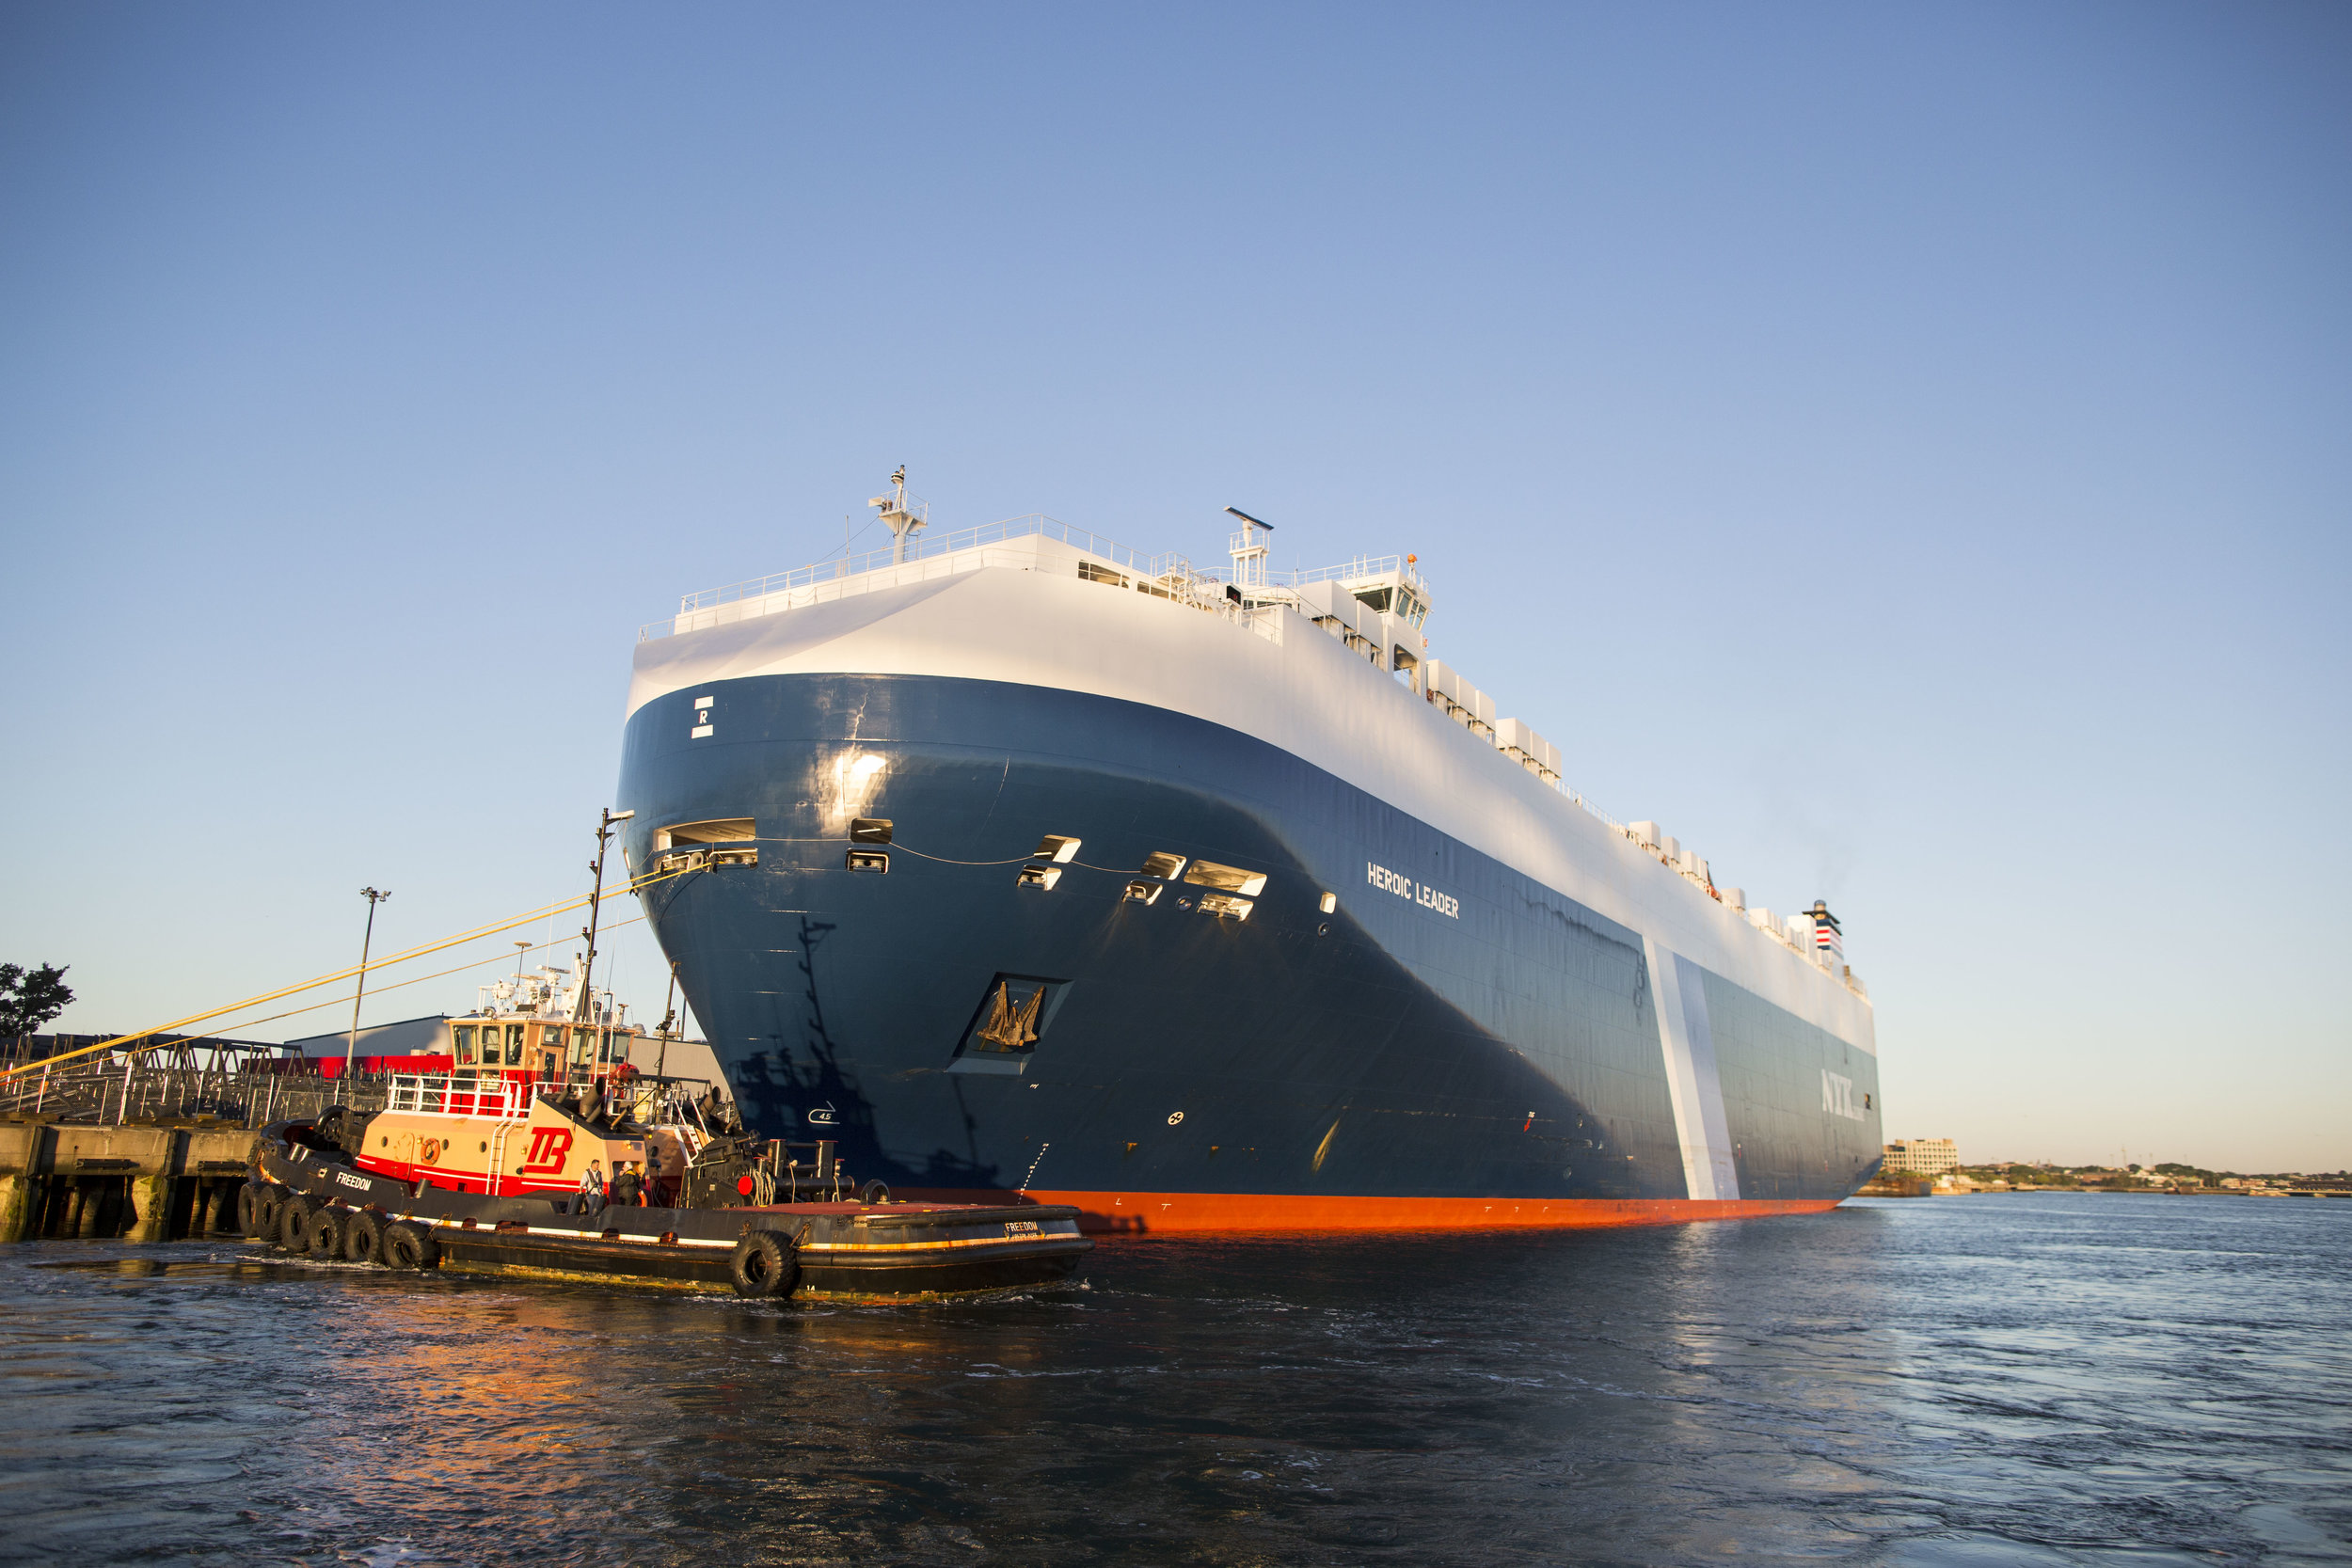 The car carrying ship Heroic Leader successfully and safely docked in port with the help of Boston Harbor Pilot Frank Morton on Aug. 23. The ship will deliver around 1500 brand new Subarus.